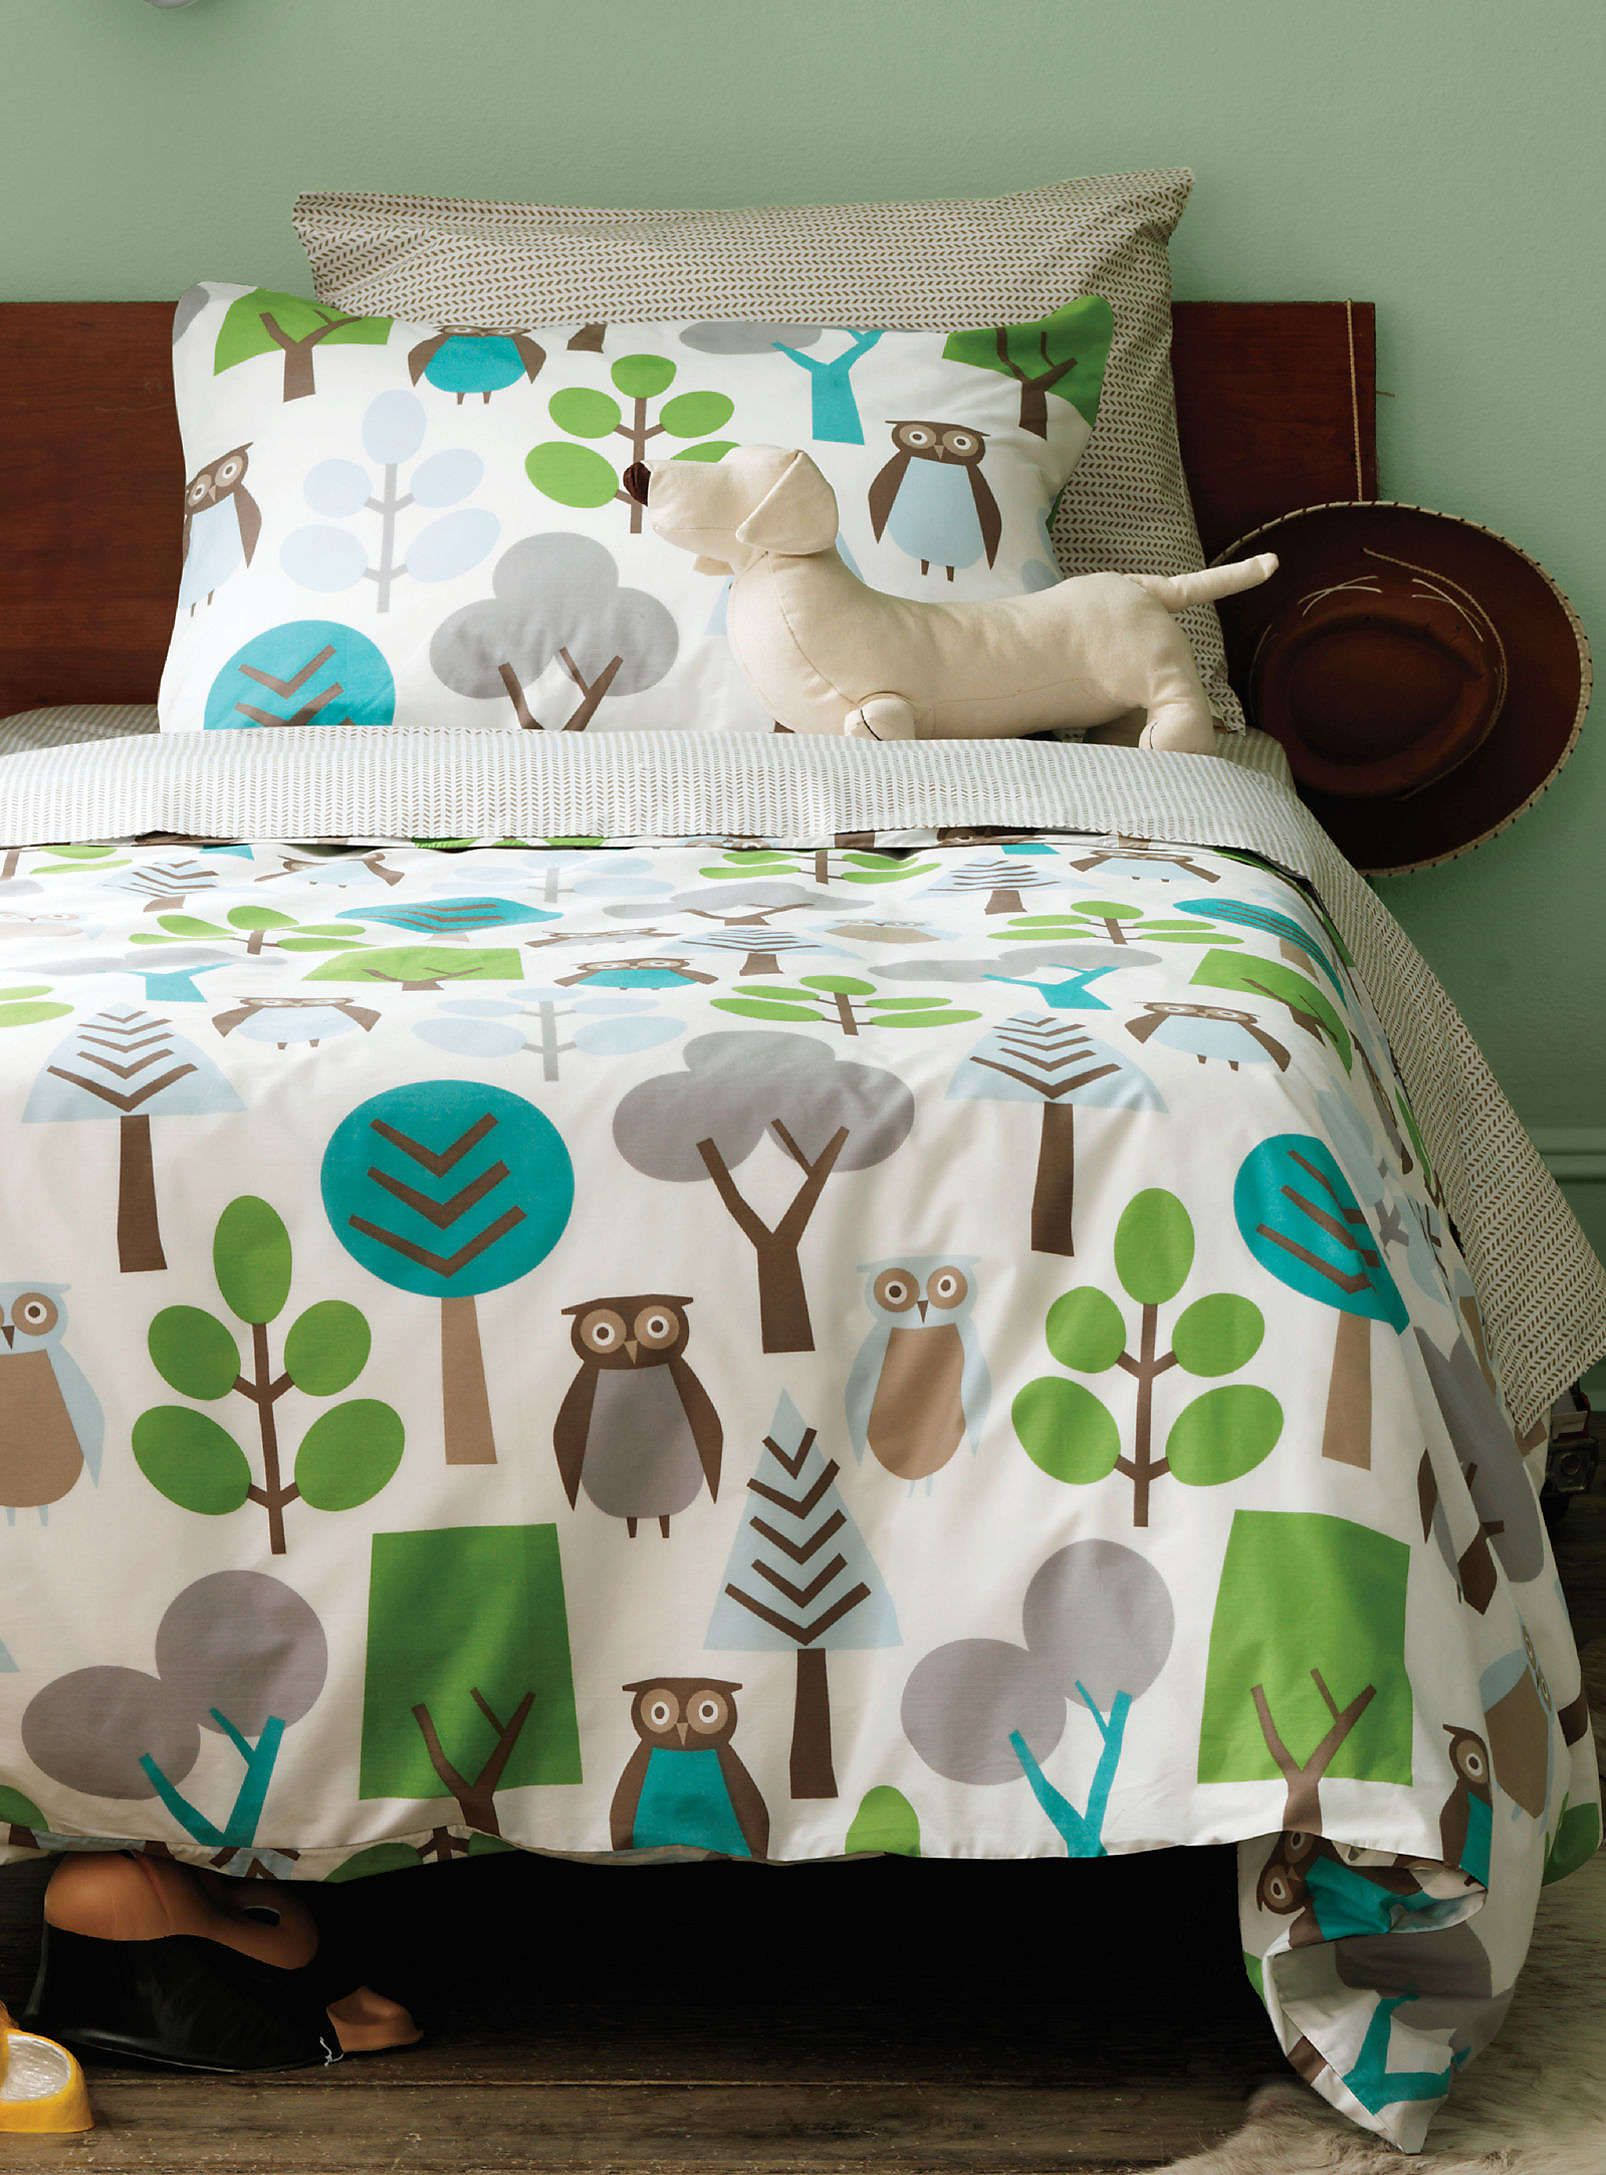 Captivating Create A Magical Room For Your Child With The Owls Sky Duvet Set From  DwellStudio. Popping With Beautical Colors, This Duvet Set Was Inspired By  Folklore ... Awesome Design